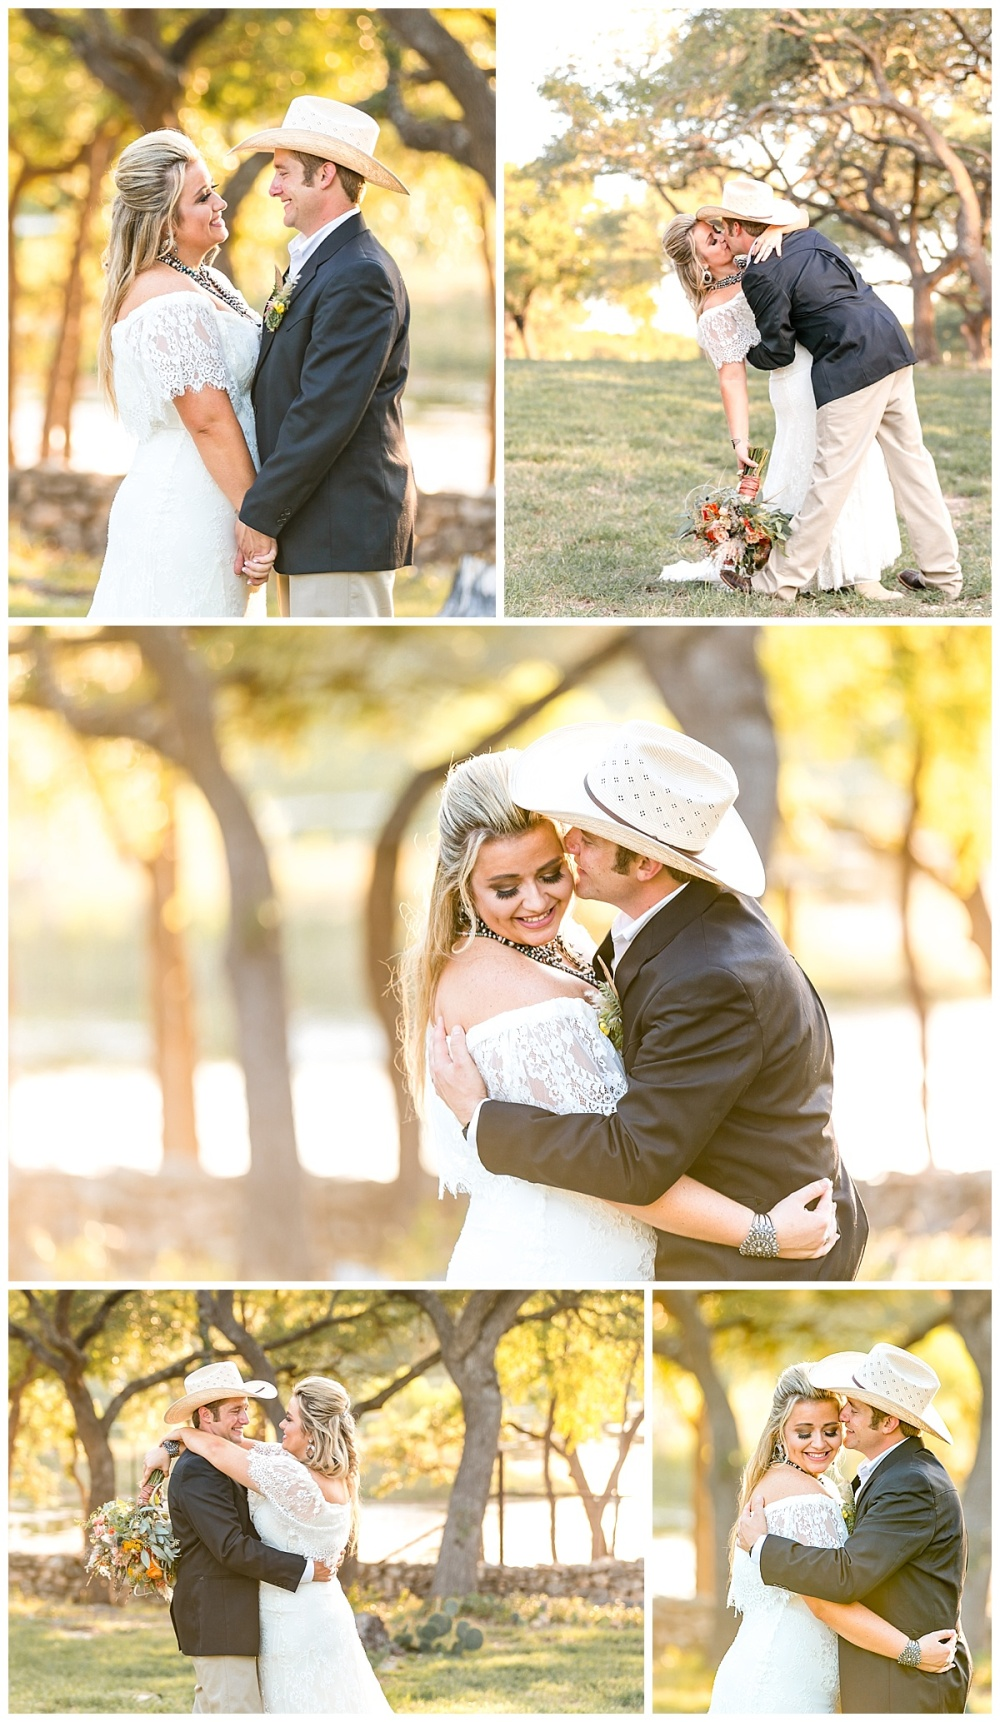 Texas-Wedding-Photographer-Braded-T-Ranch-Kendalia-Bride-Groom-Southwestern-Style-Carly-Barton-Photography-Vogt_0054.jpg